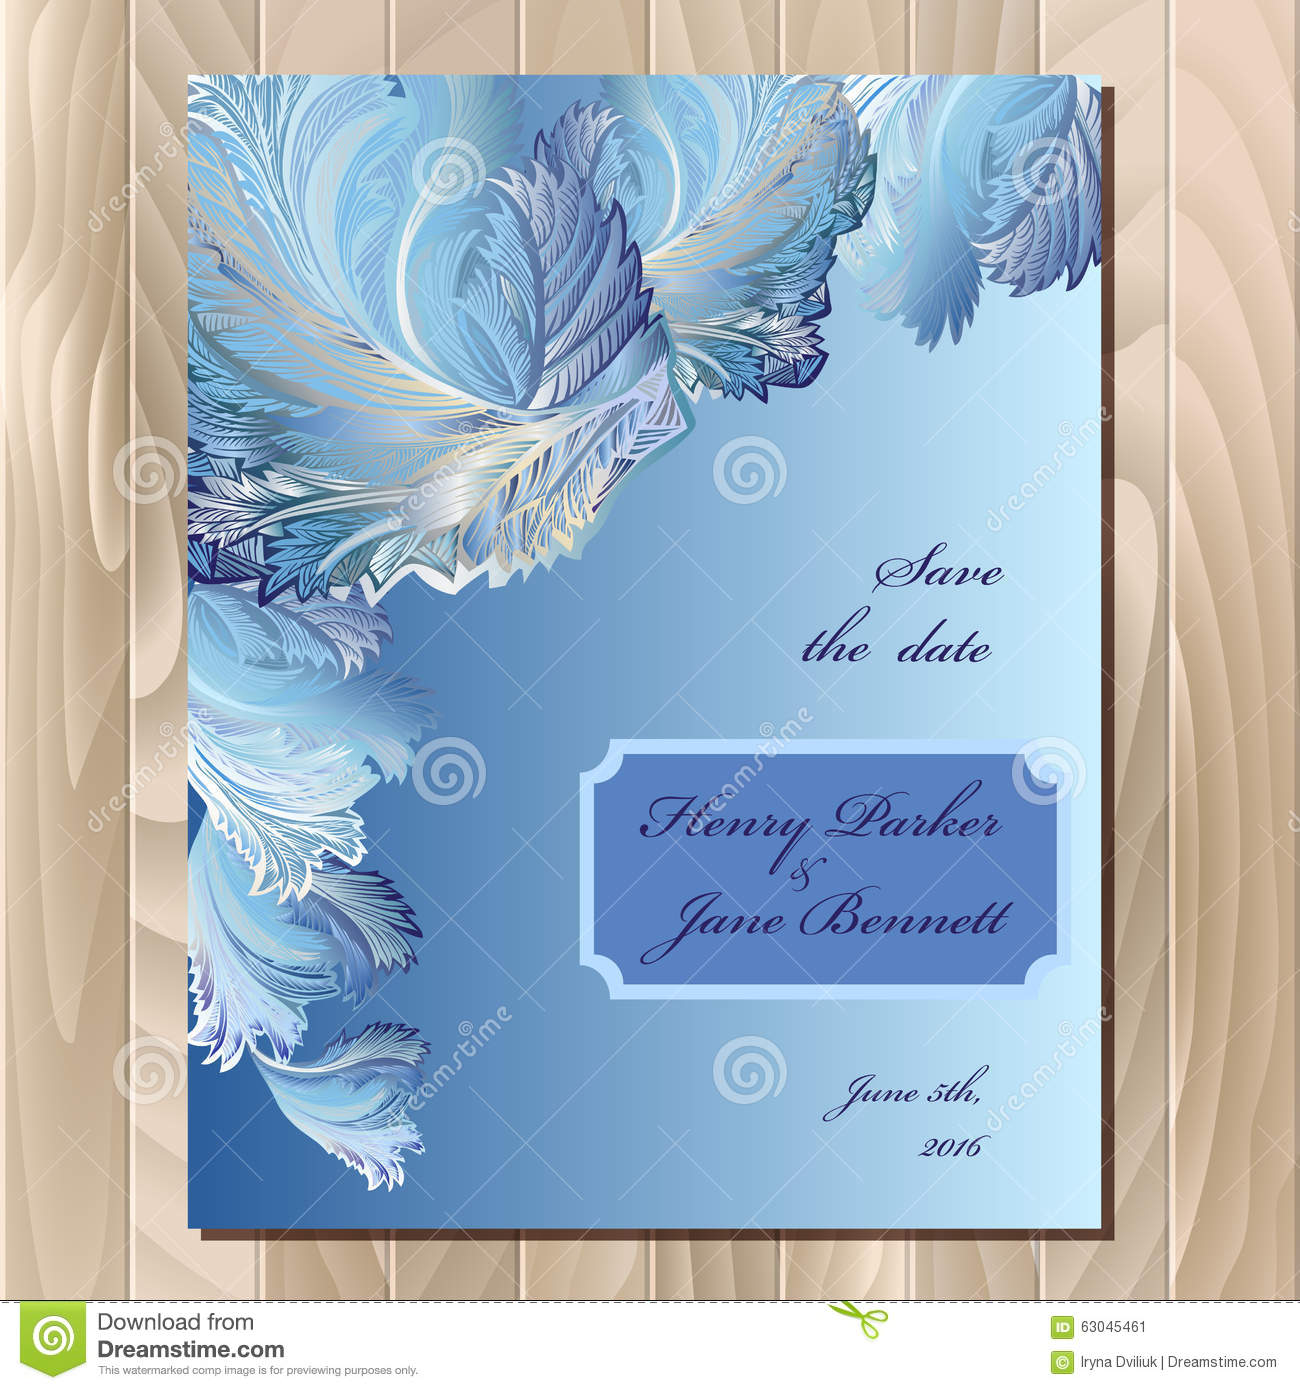 Winter frozen glass design wedding card. Vector background illustration.